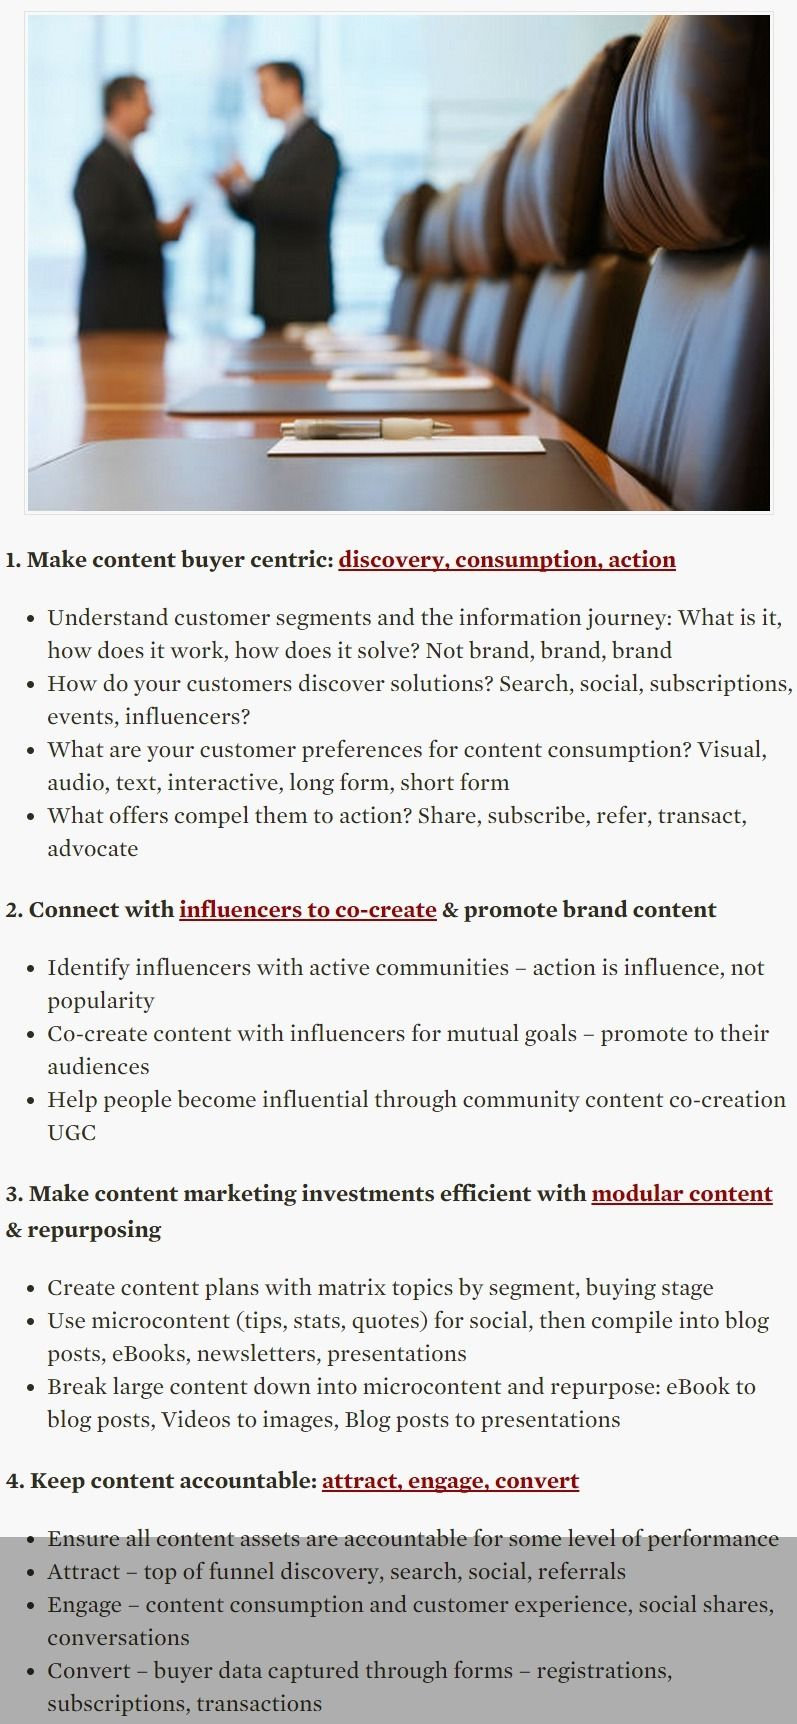 Four Ways CMOs Can Differentiate & Optimize Their Content Marketing Strategy - TopRank Blog